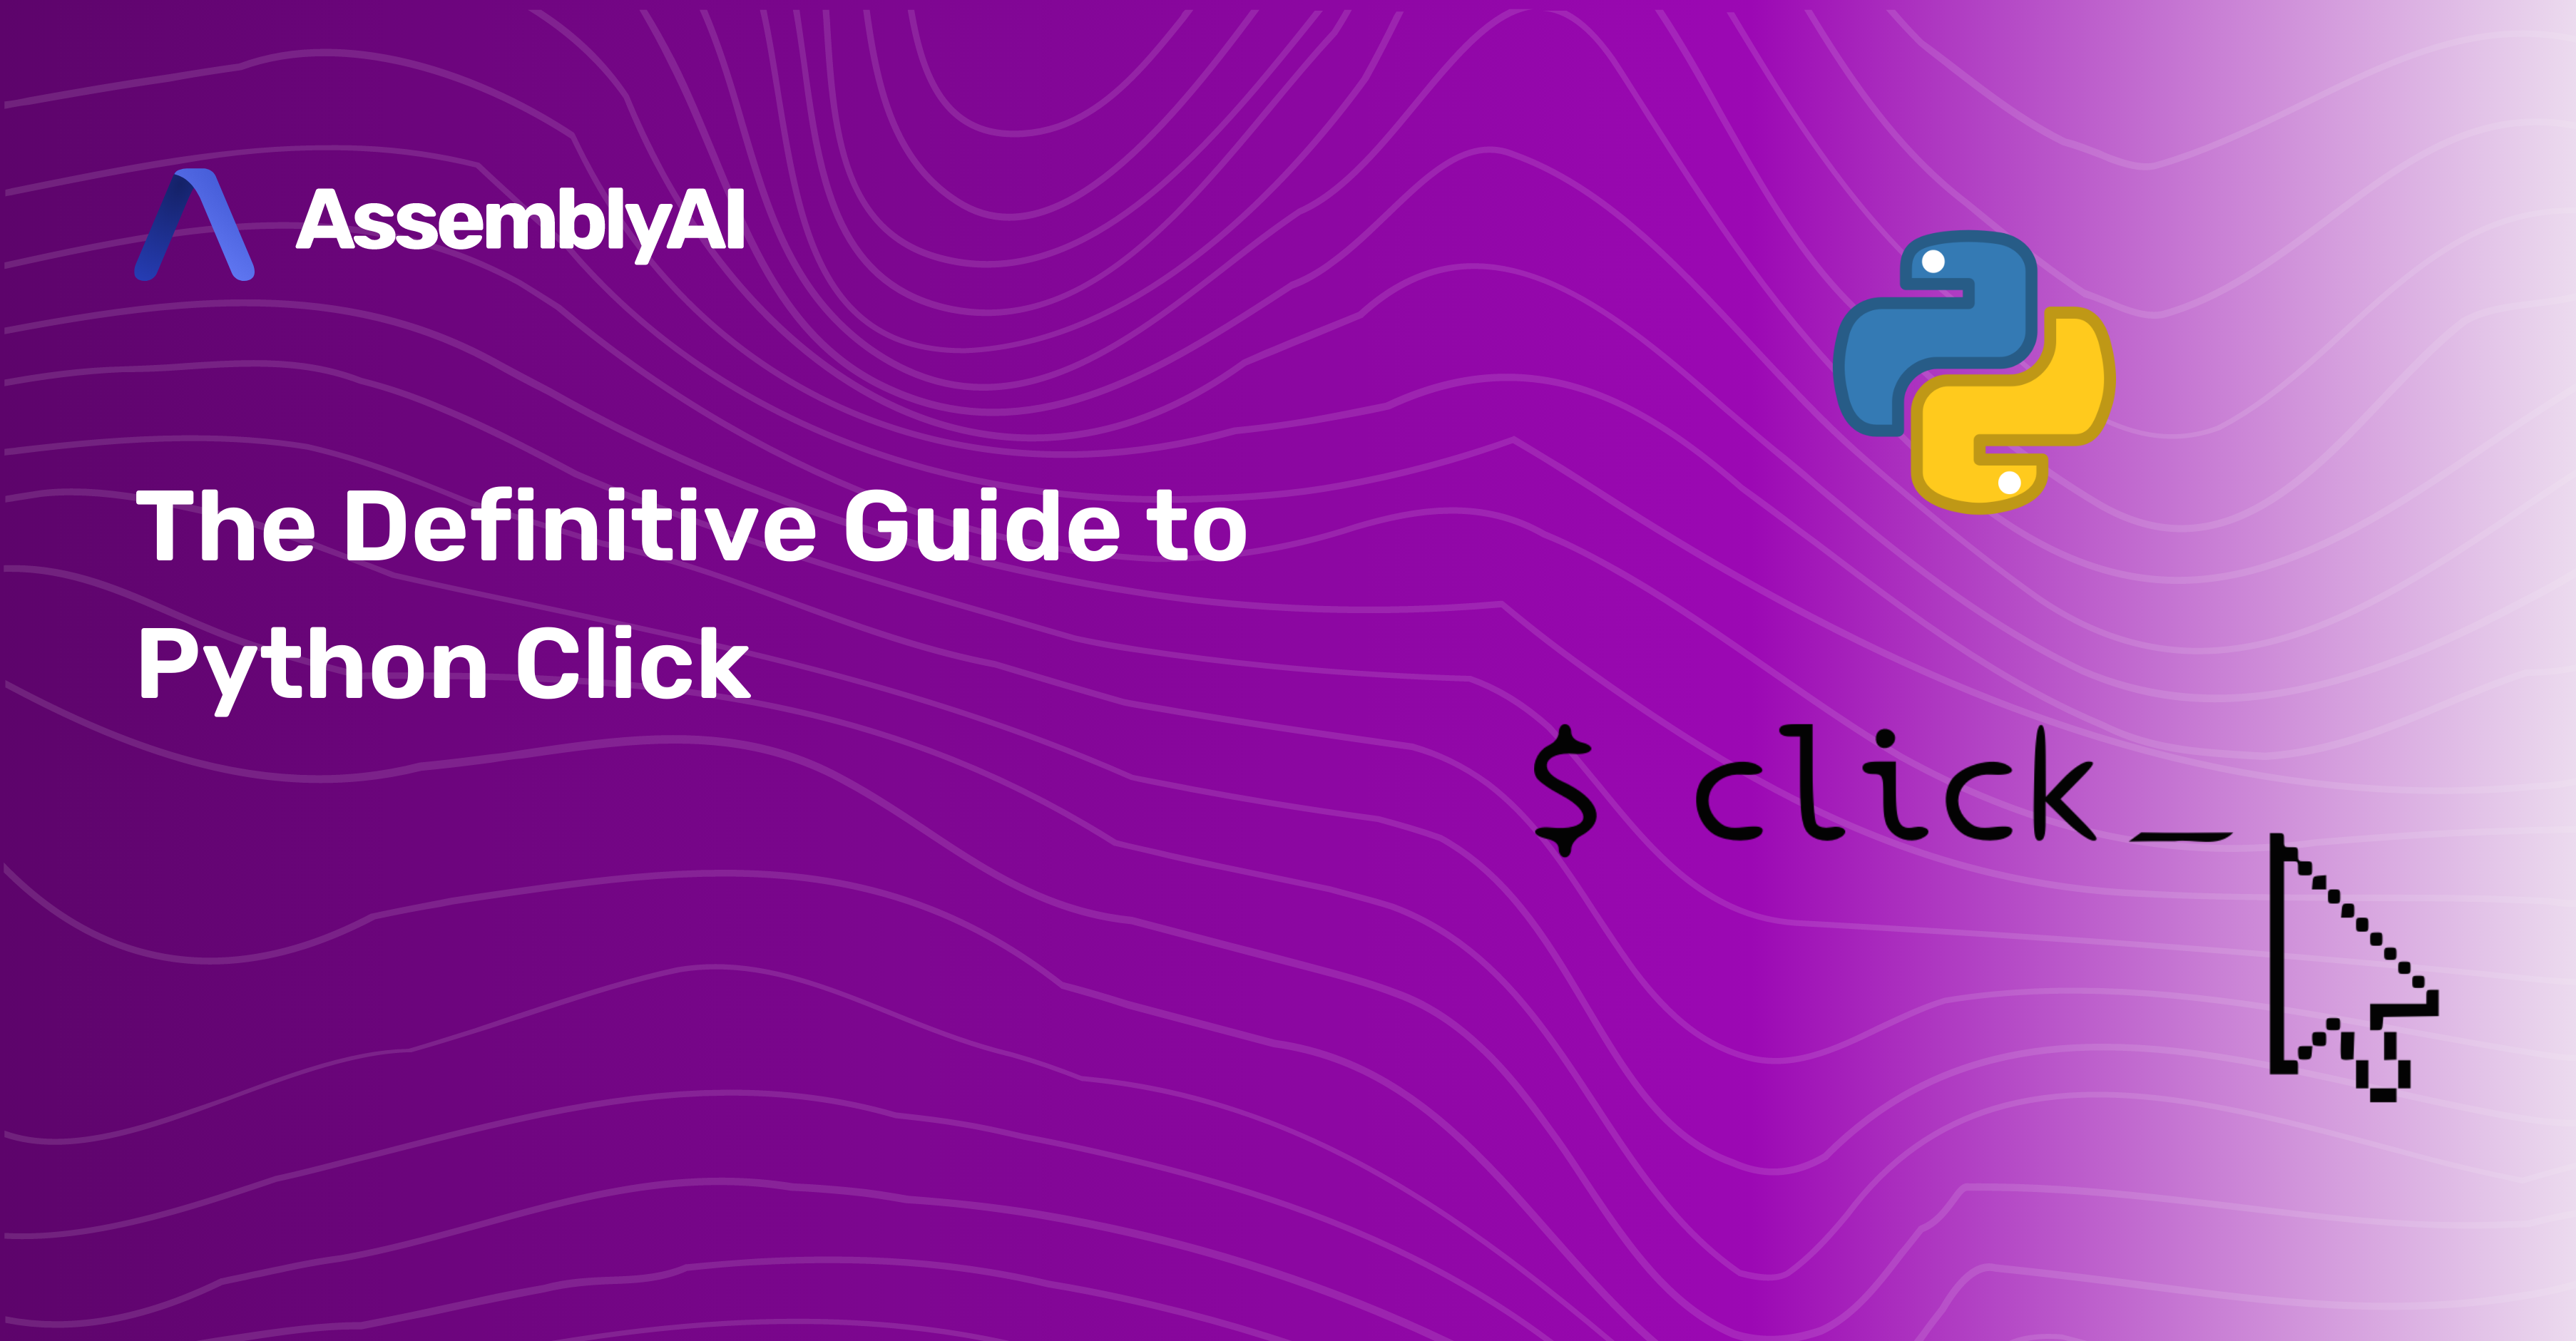 The Definitive Guide to Python Click